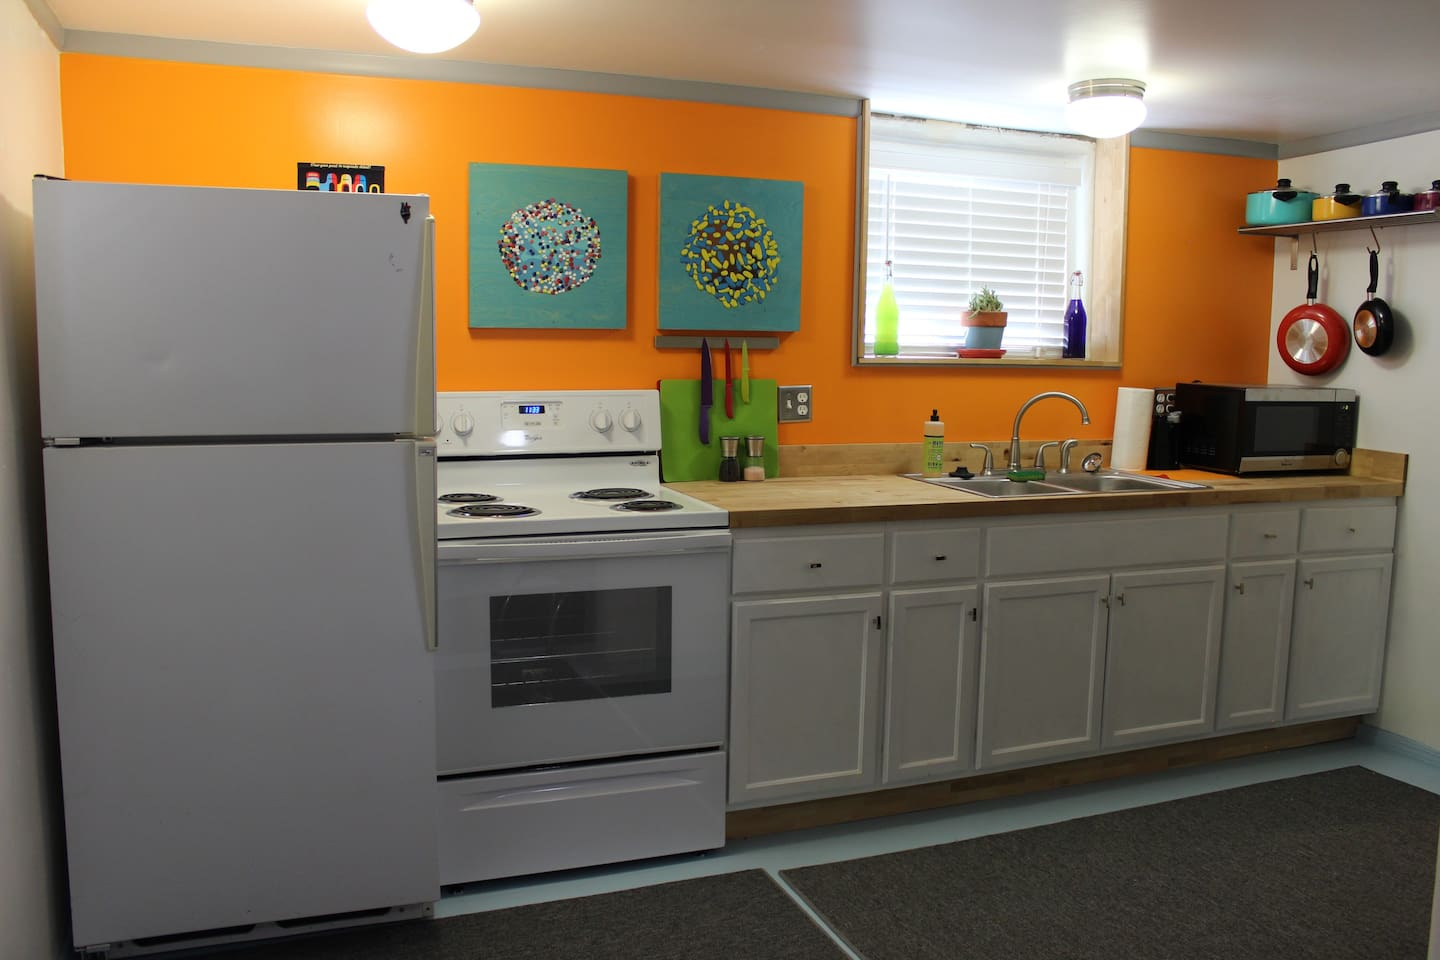 Fully functioning kitchen with fridge, stove, sink, microwave, can opener, k-cup coffee maker. Dishes, pots and pans, and silverware as well.